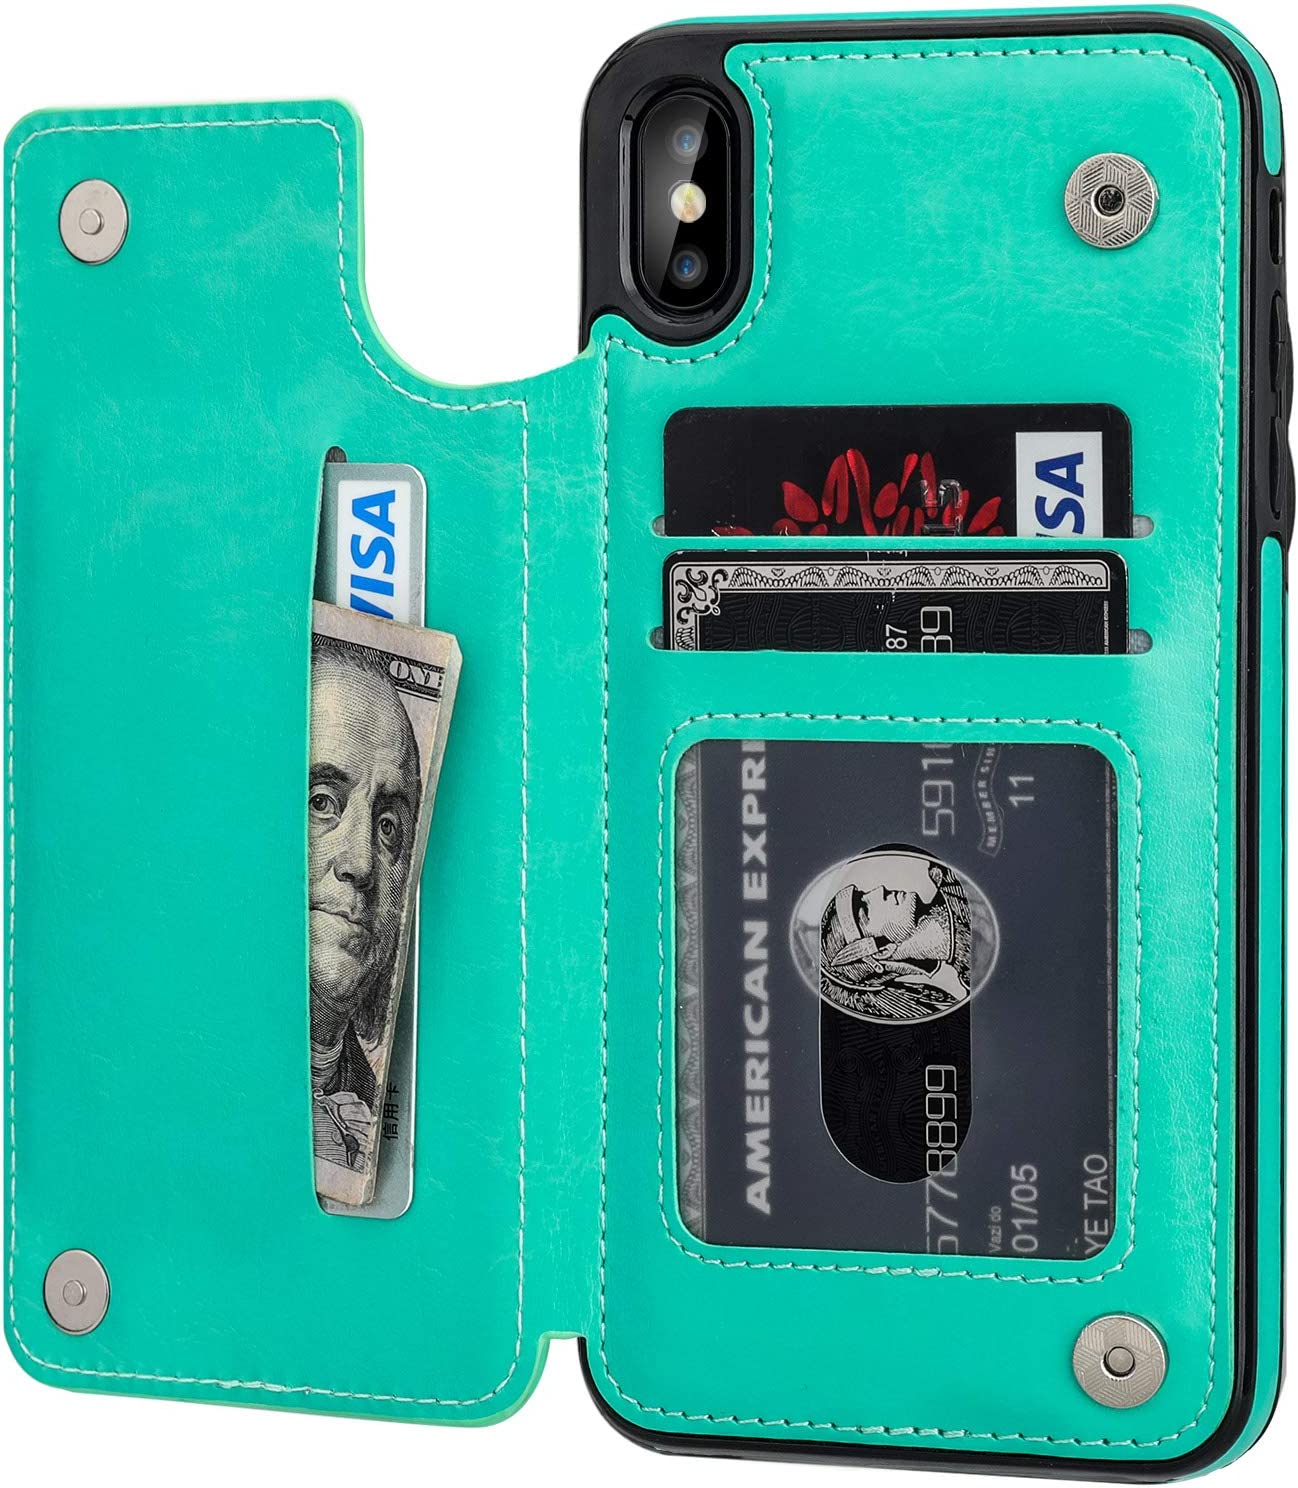 "iPhone Xs Max Wallet Case with Card Holder,OT ONETOP Premium PU Leather Kickstand Card Slots Case,Double Magnetic Clasp and Durable Shockproof Cover 6.5 Inch (iPhone Xs Max 6.5"" Green)"